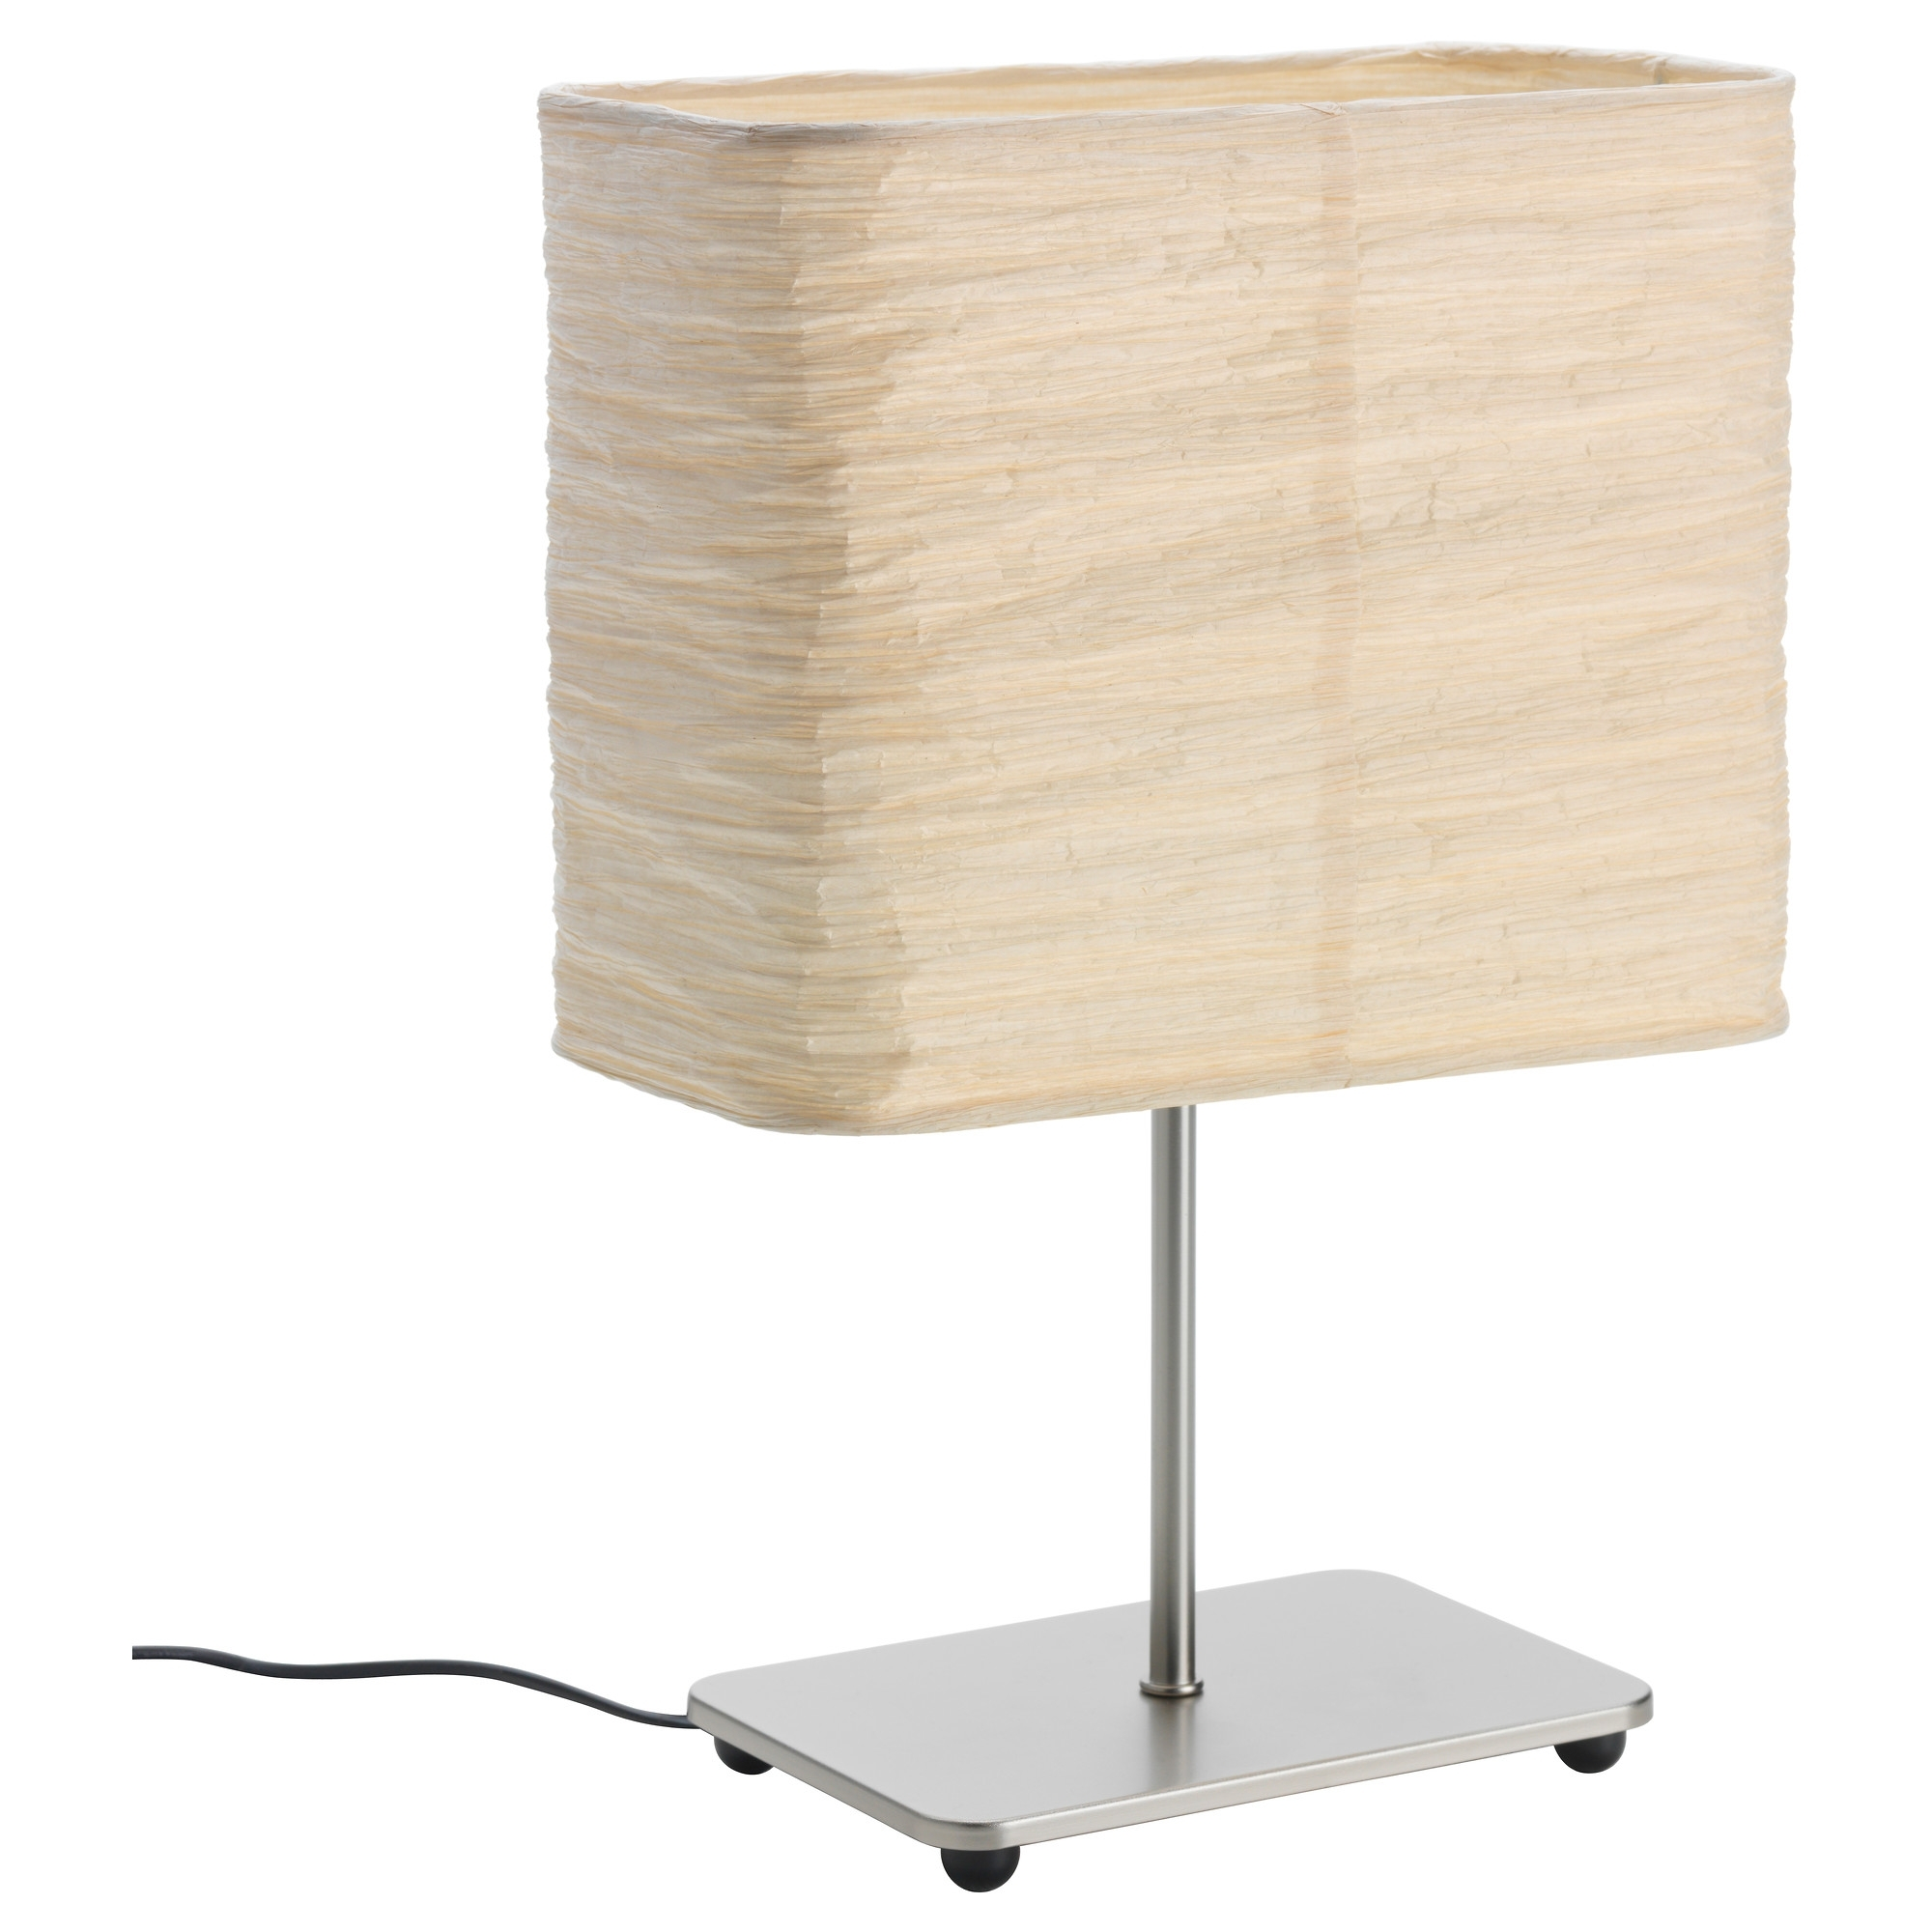 71 Most Splendiferous Ikea Bedside Lamps Dunelm Table Large For Within Latest Debenhams Table Lamps For Living Room (View 11 of 20)